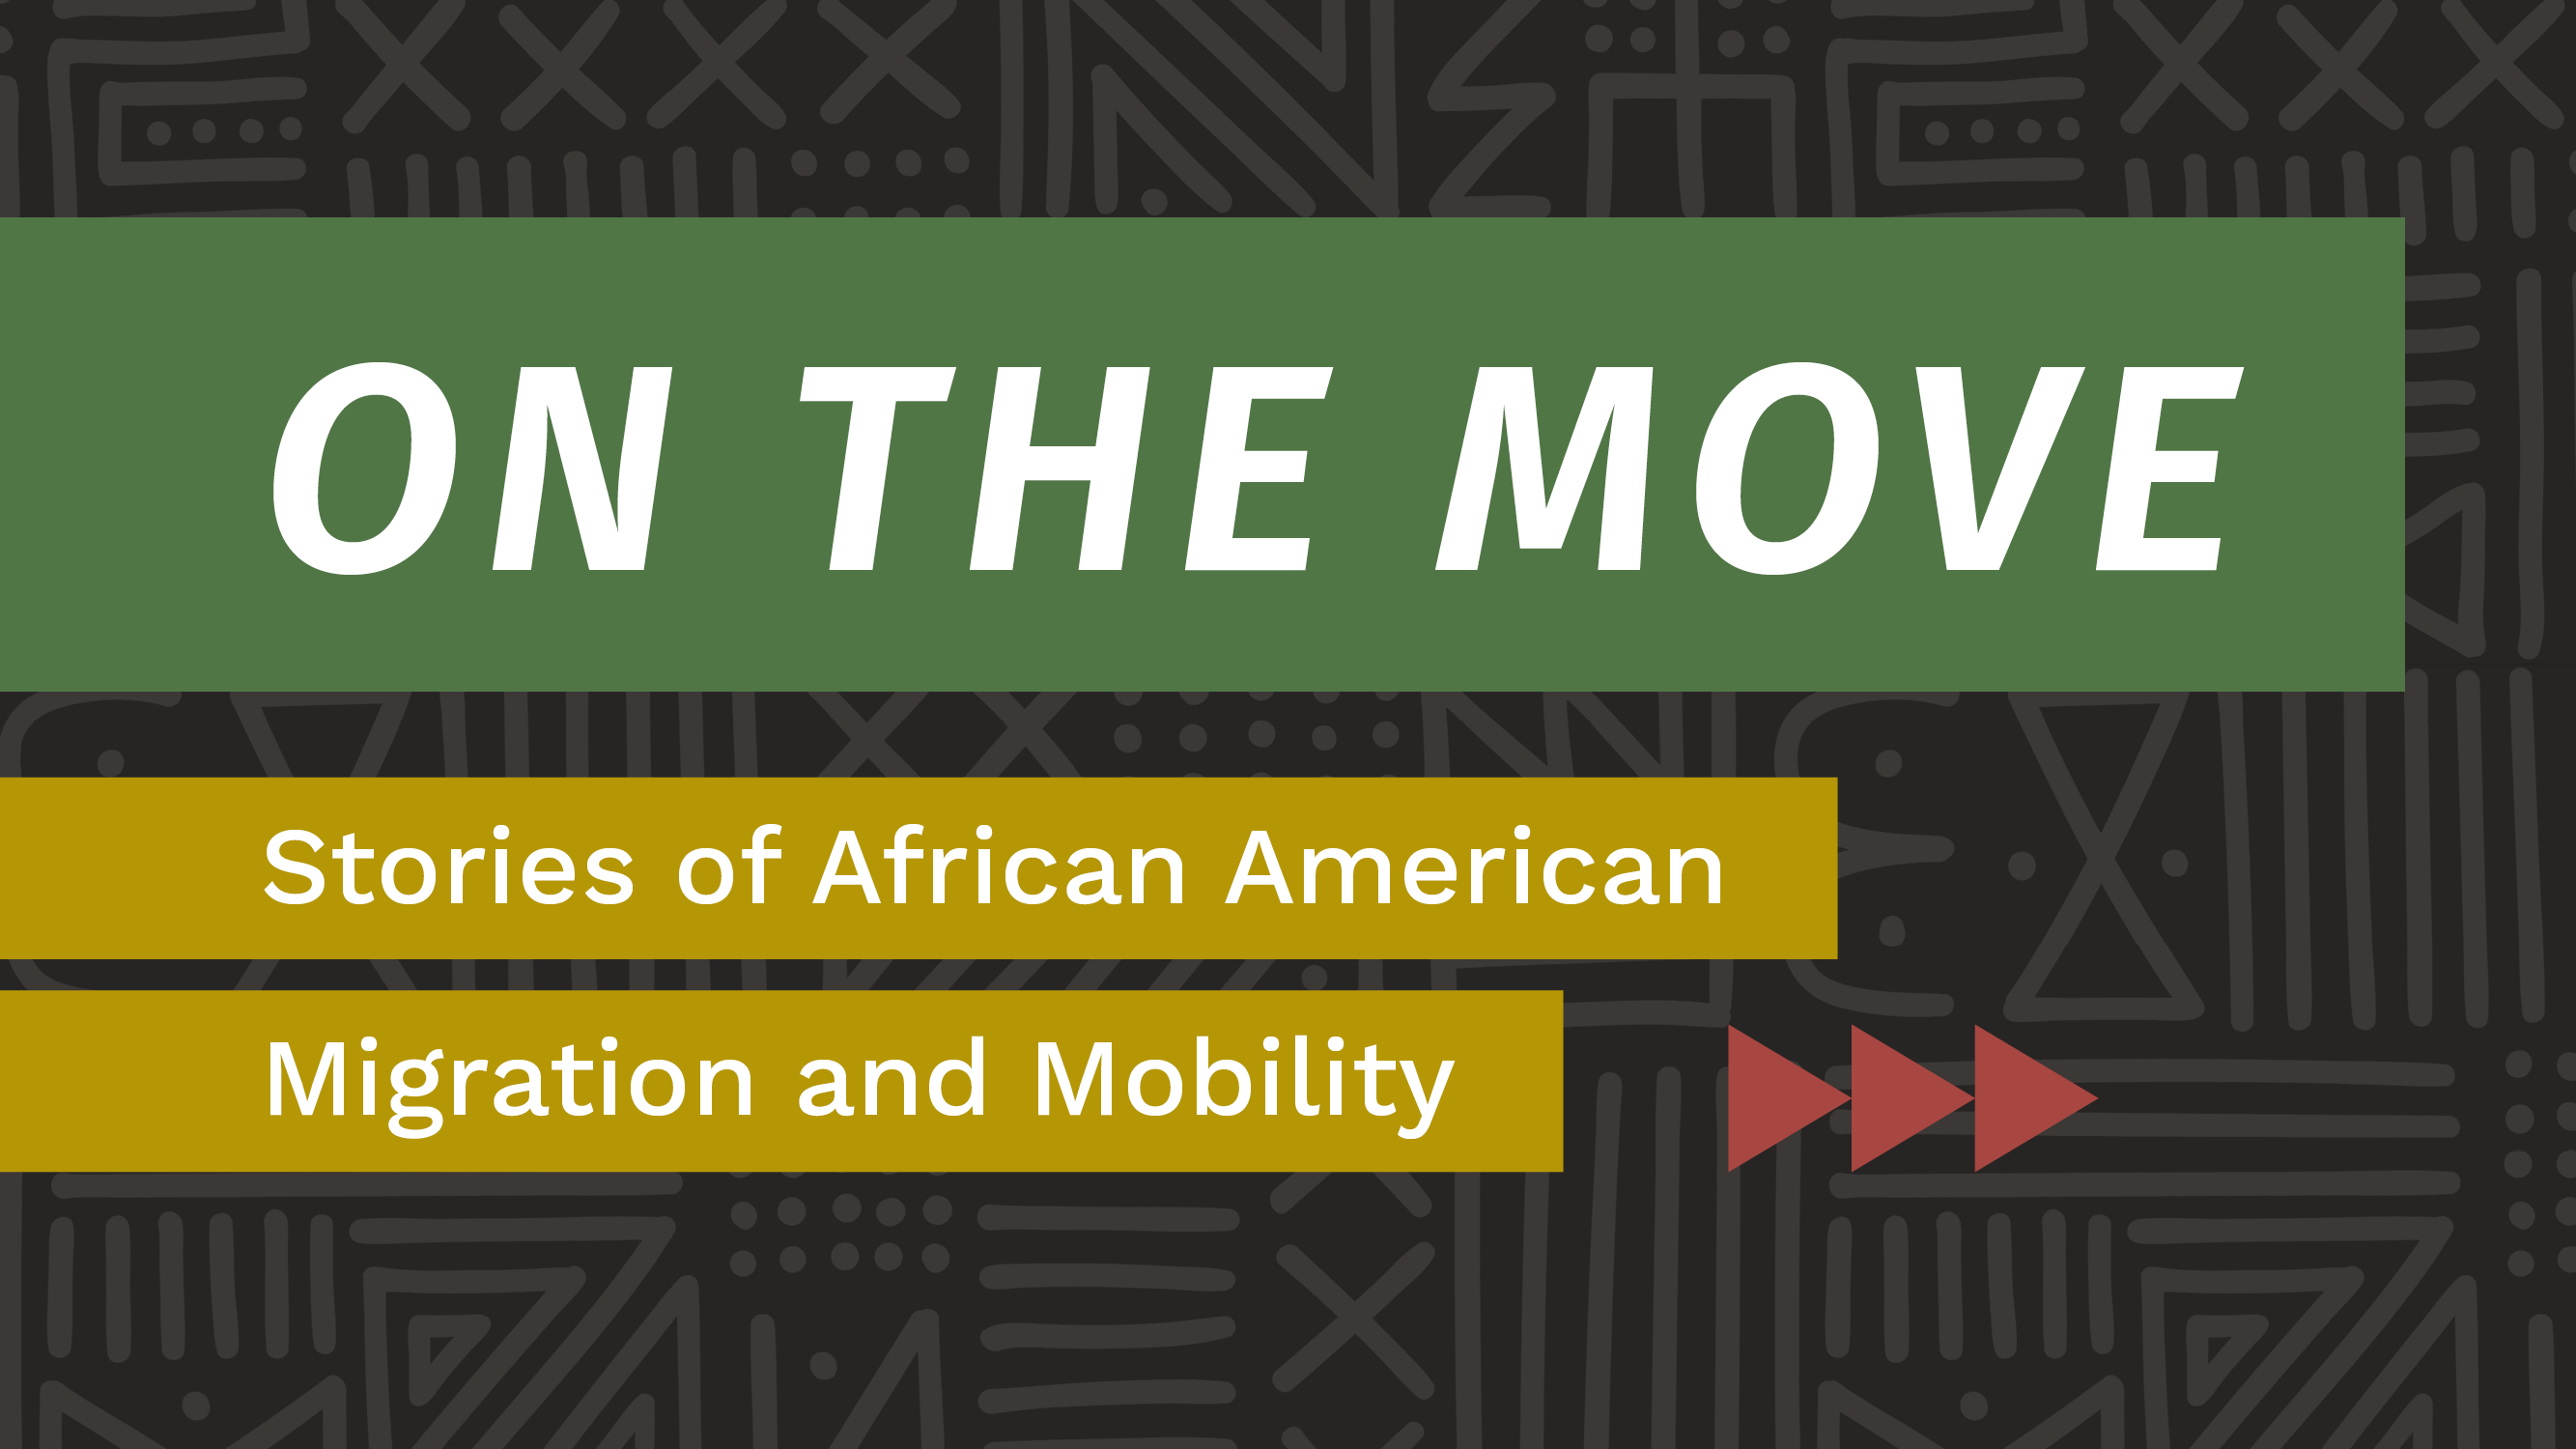 On the Move: Stories of African American Migration and Mobility